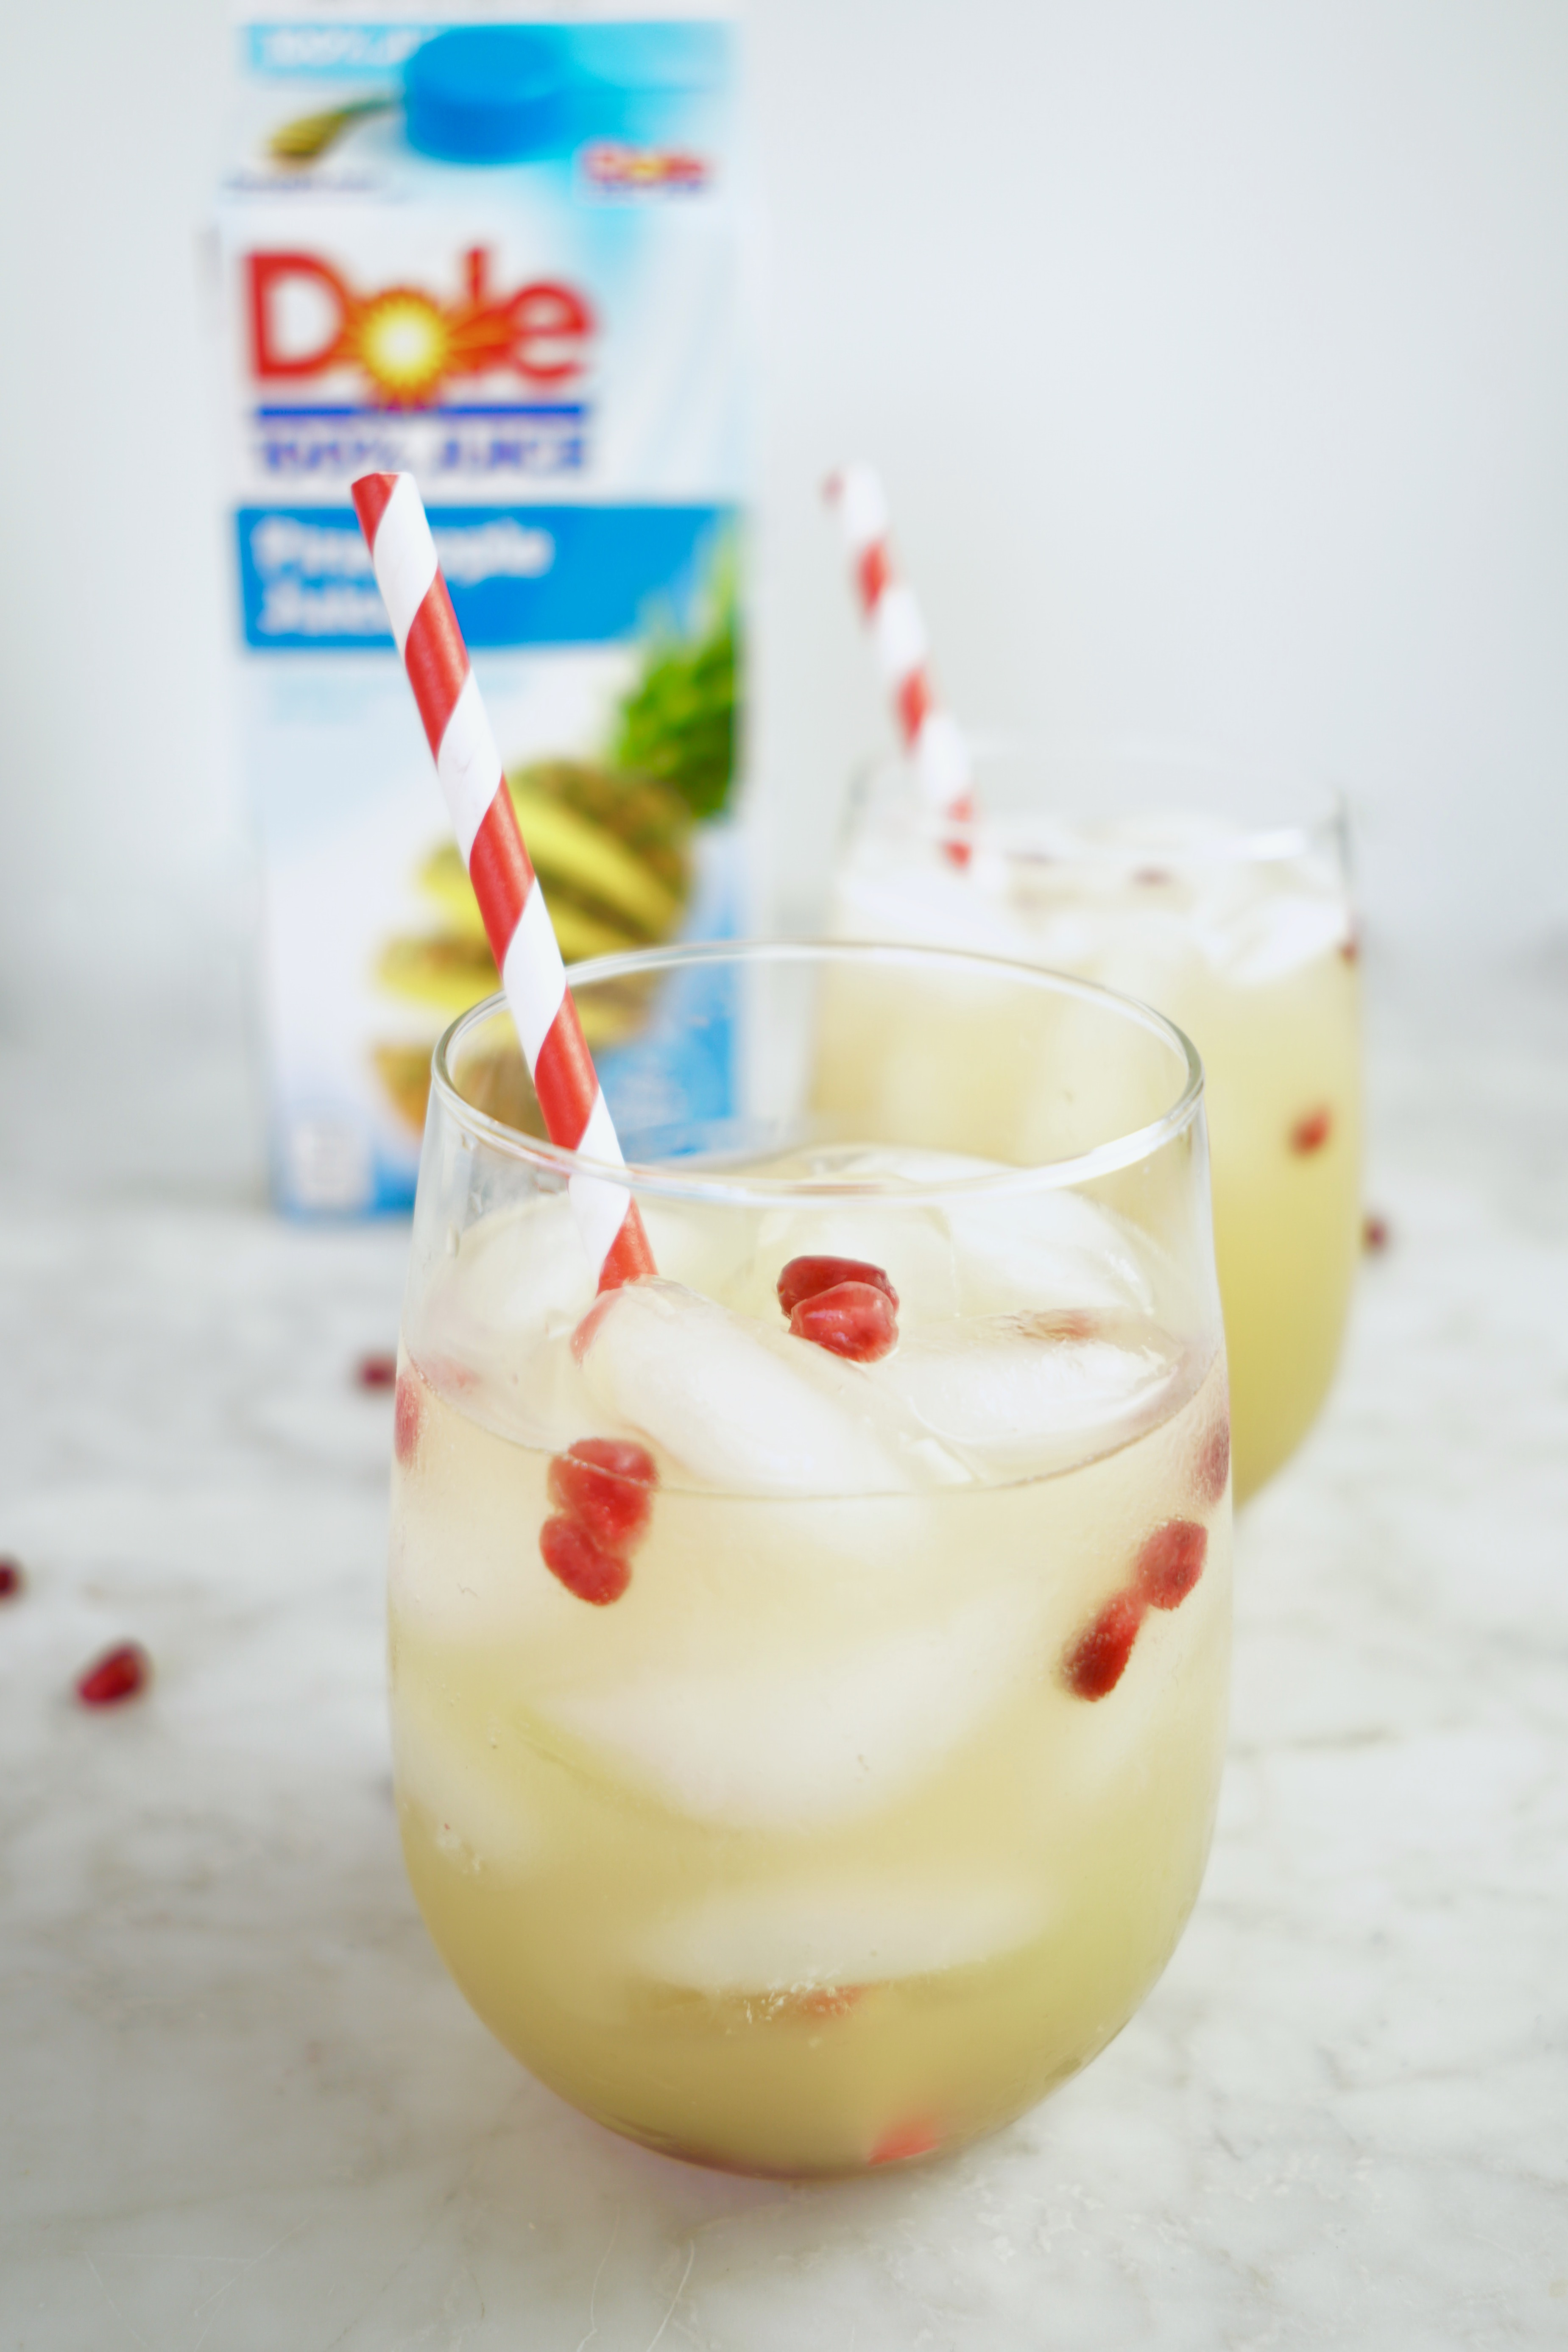 Pineapple Pomegranate Spritzer